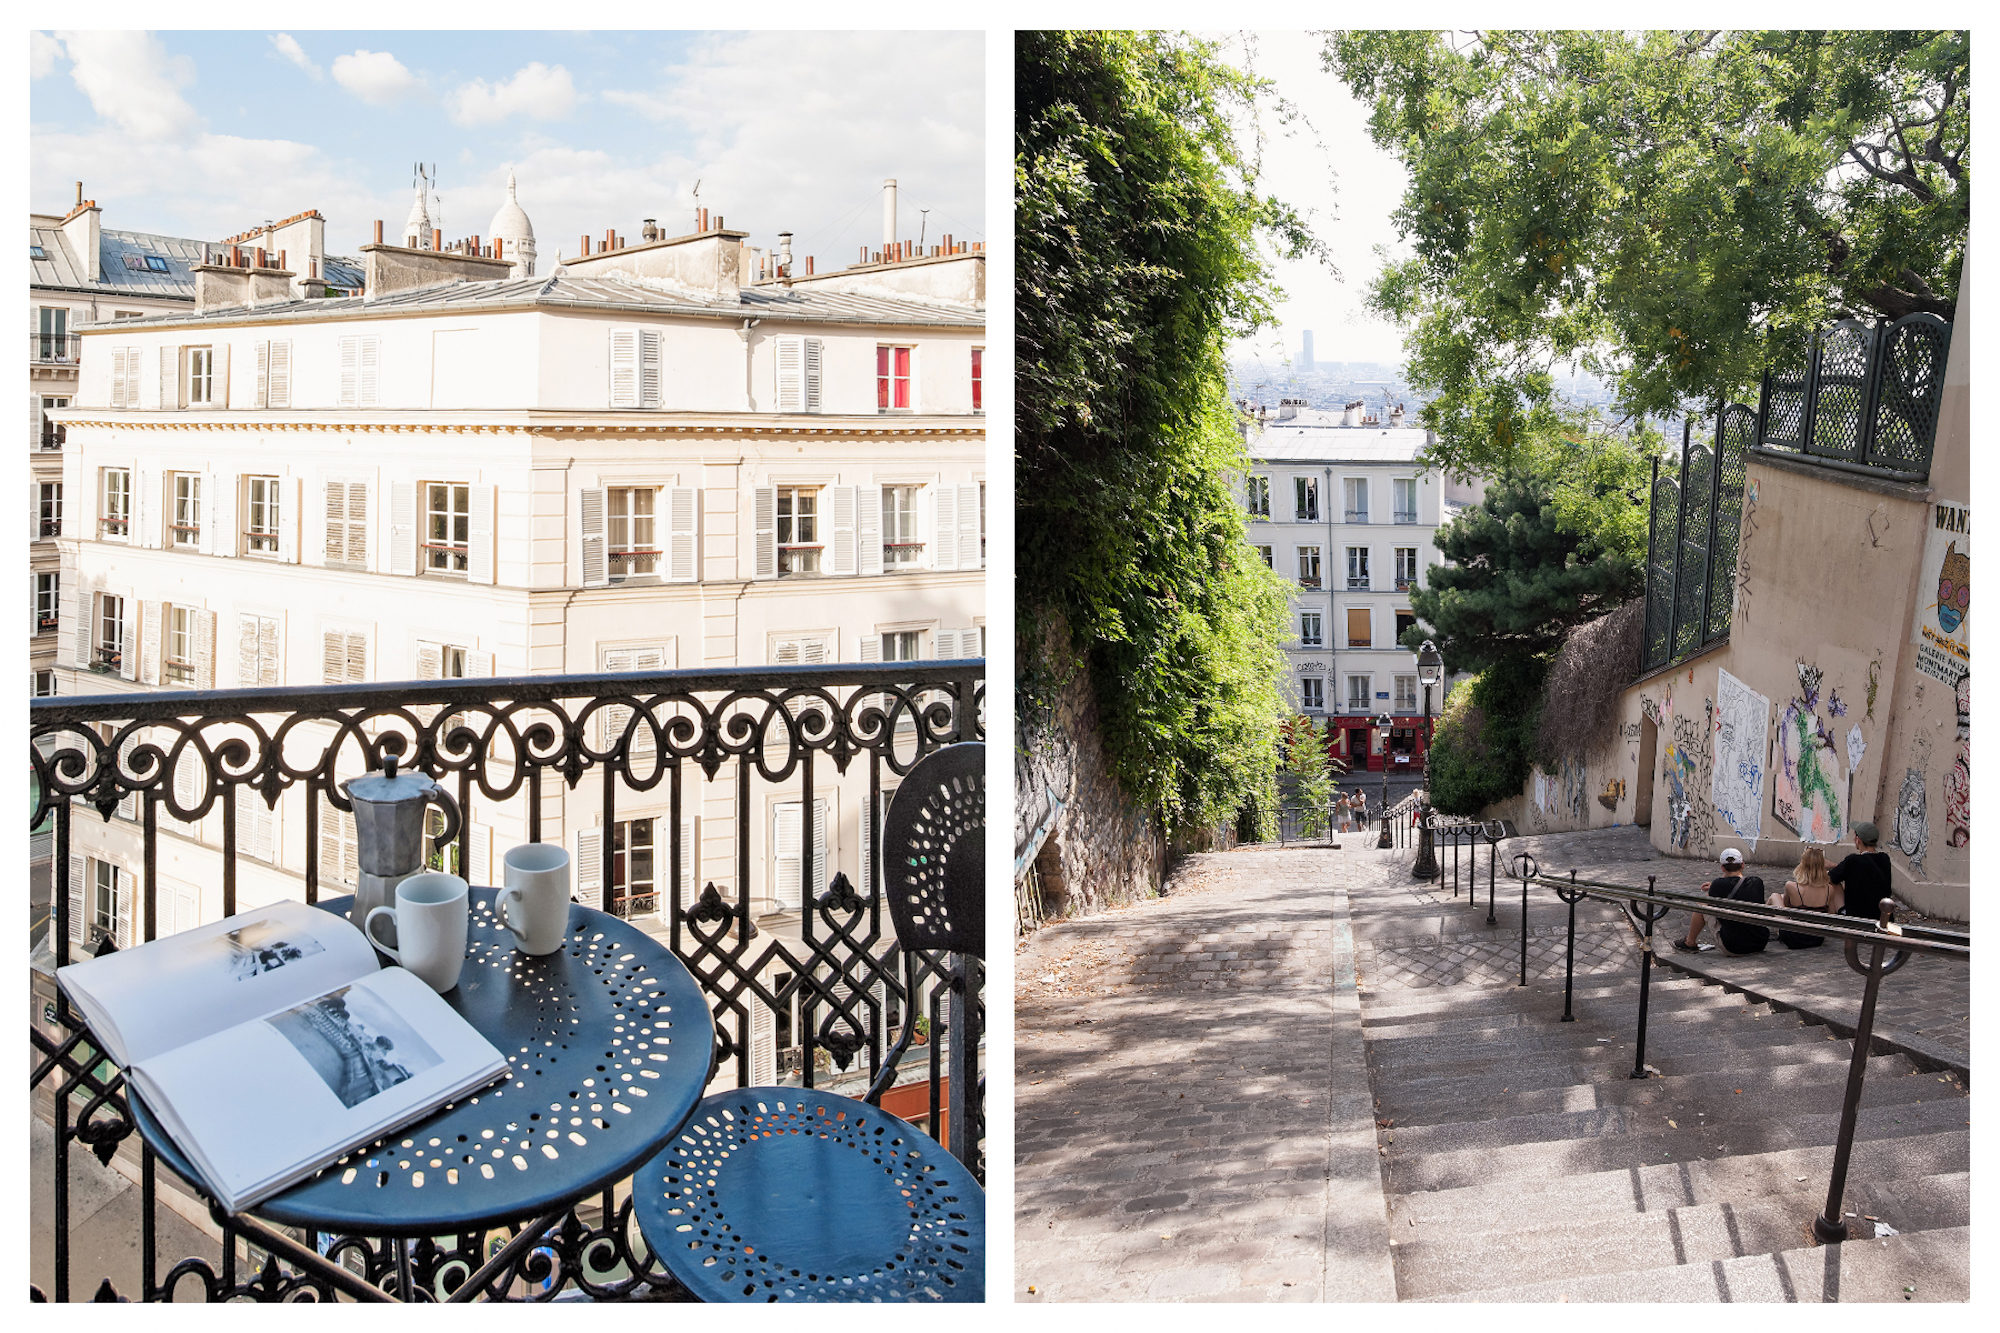 A table, two cups and a coffee pot on a table set up on the balcony of Parisian apartment, with a view of the sunny street (left). The narrow stone stairs leading up to Montmartre hill in Paris, lined by leafy trees (right).